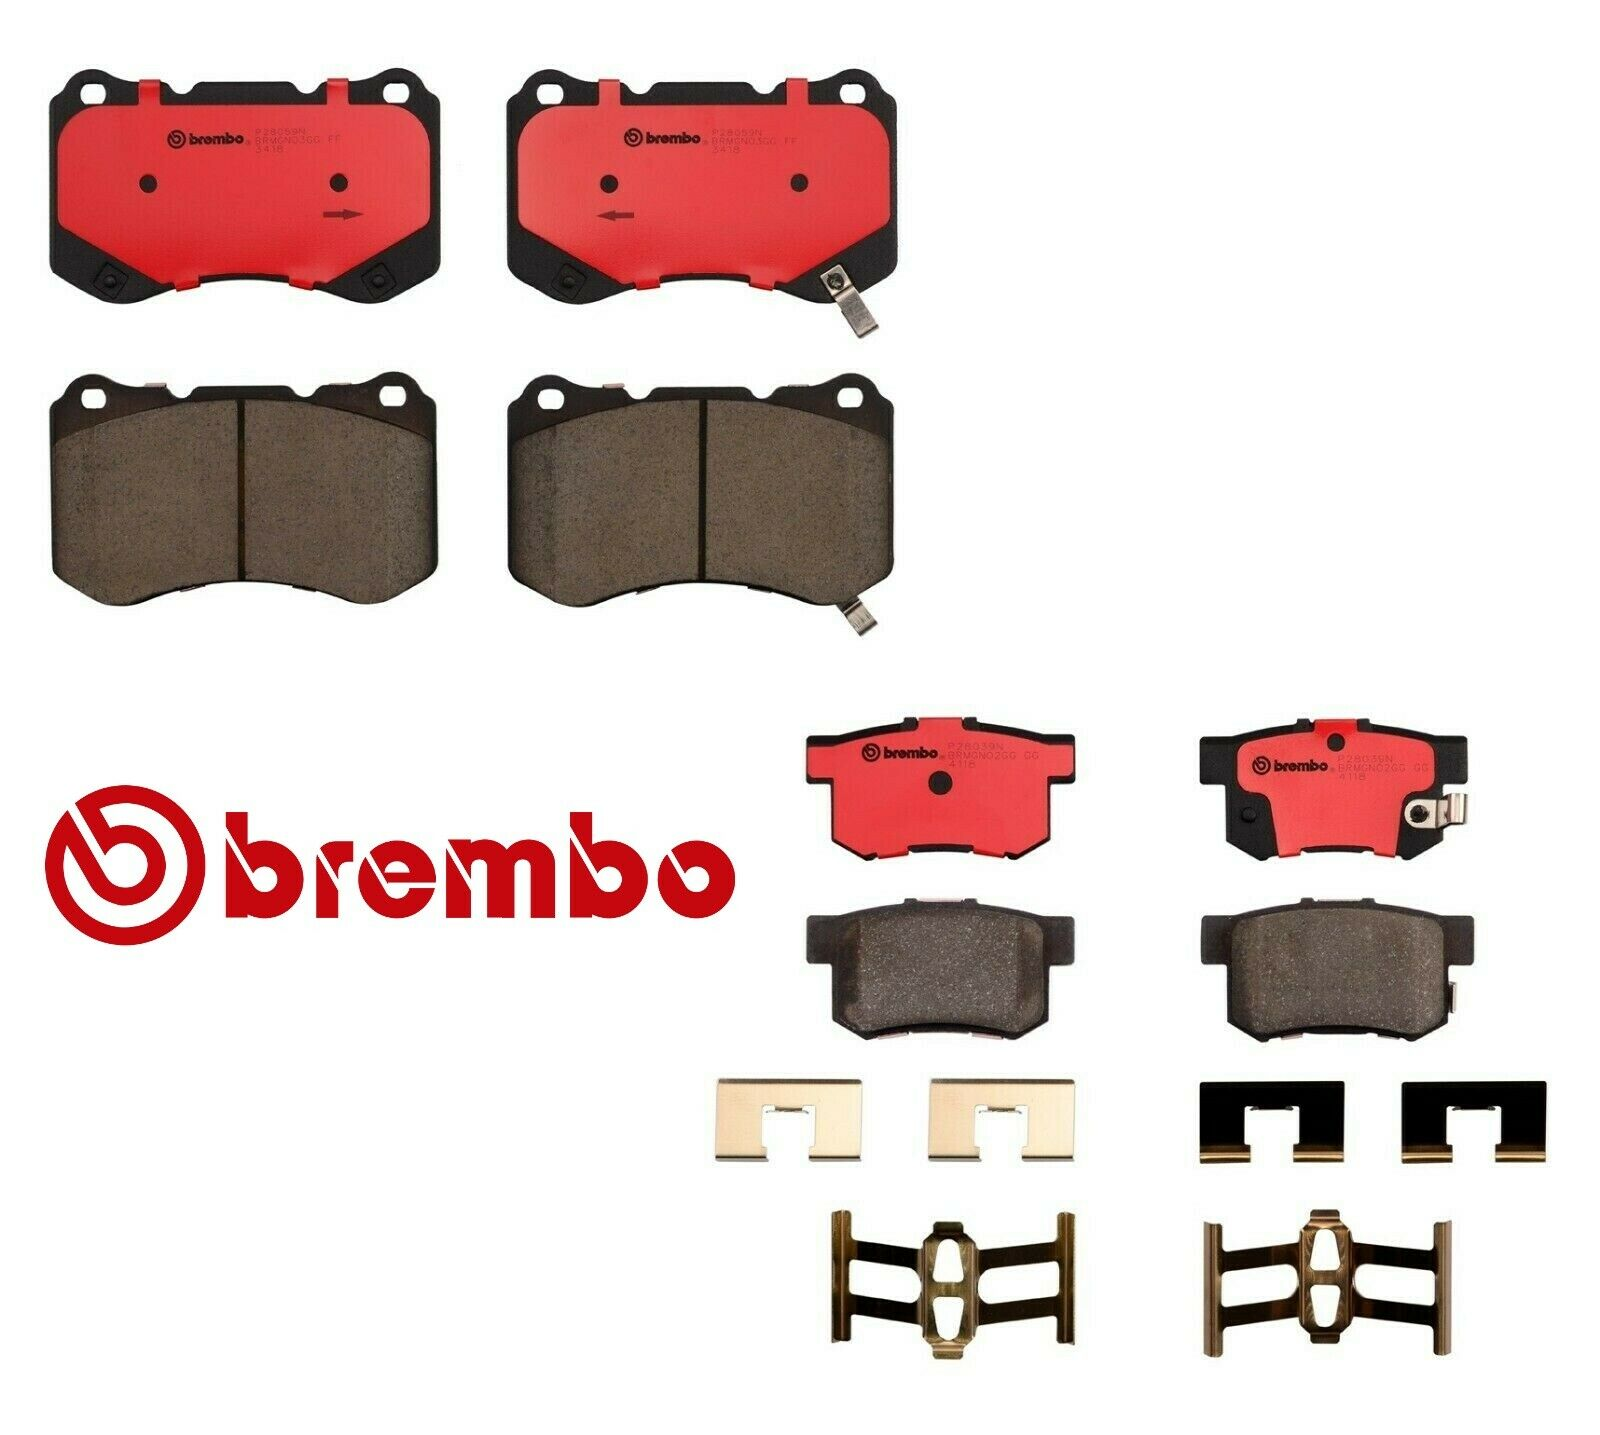 BREMBO FRONT Rear Brake Pads Acura TL TypeS W Bembo Brake System - Acura tl brake pads